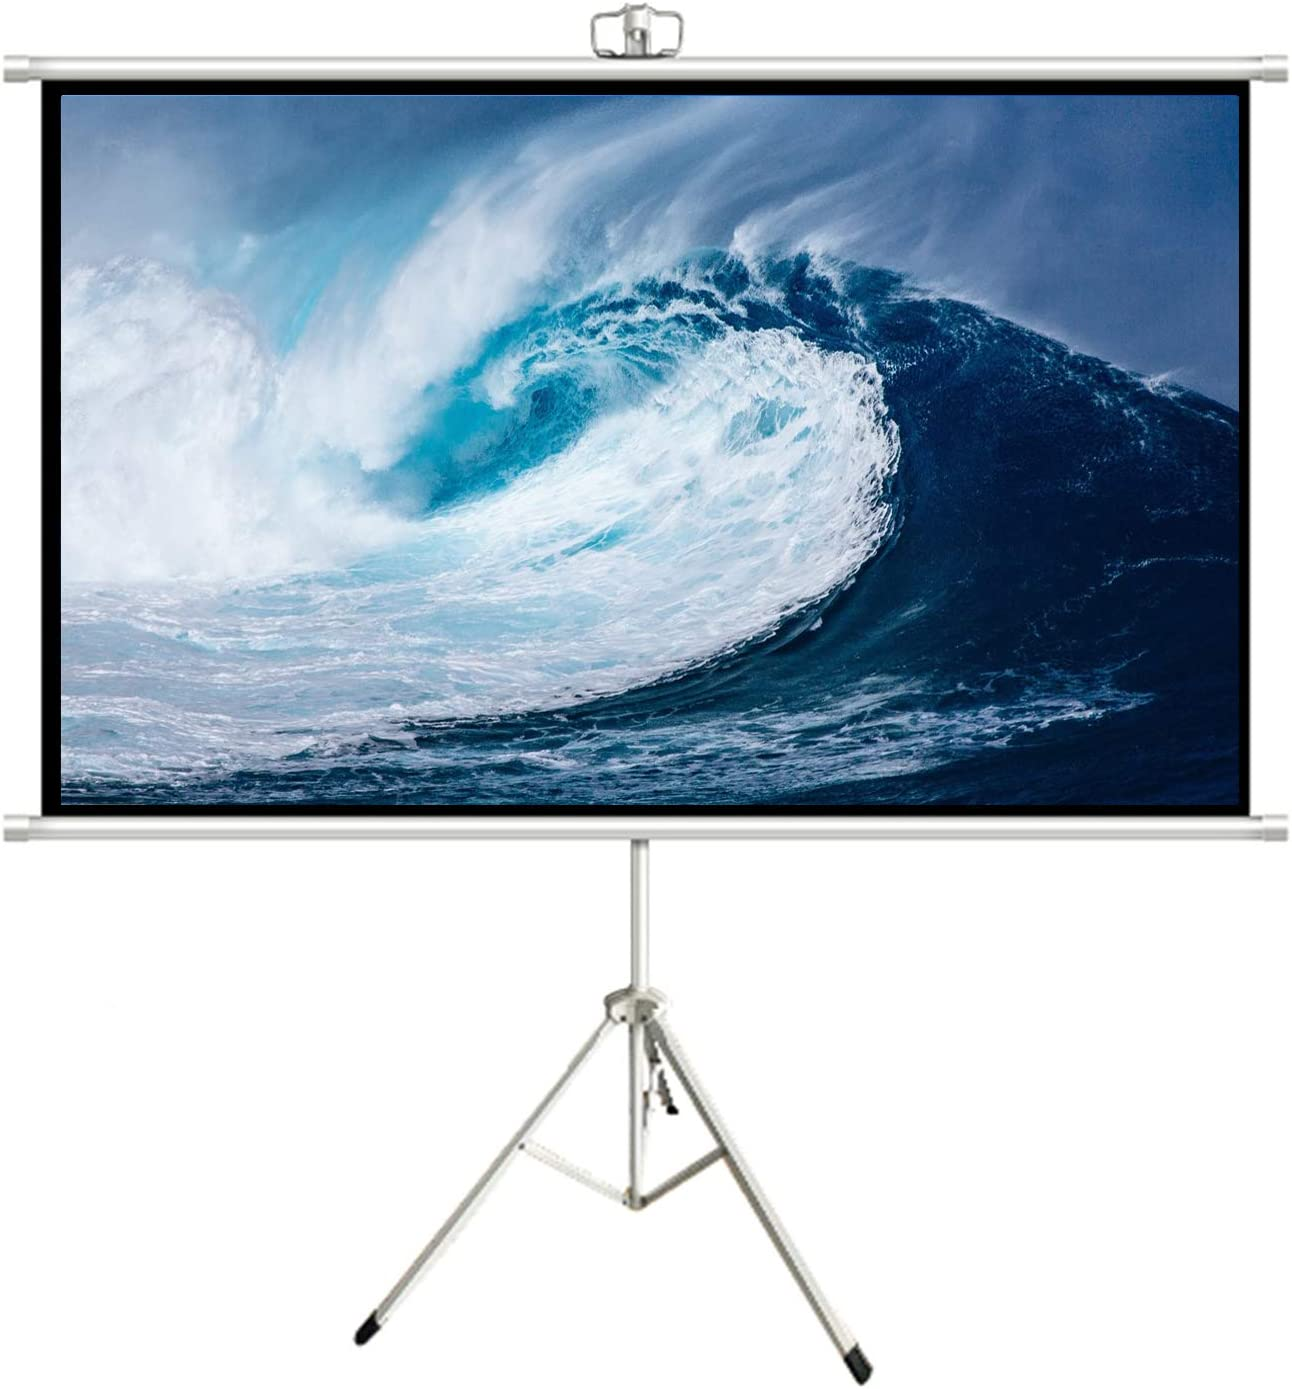 ALDS Anti-Light Projector Screen 60 inch 4K HD 16:9 PVC Projection Screen Fast Assembly Design Movie Screens for Public Display Conference Presentation Party